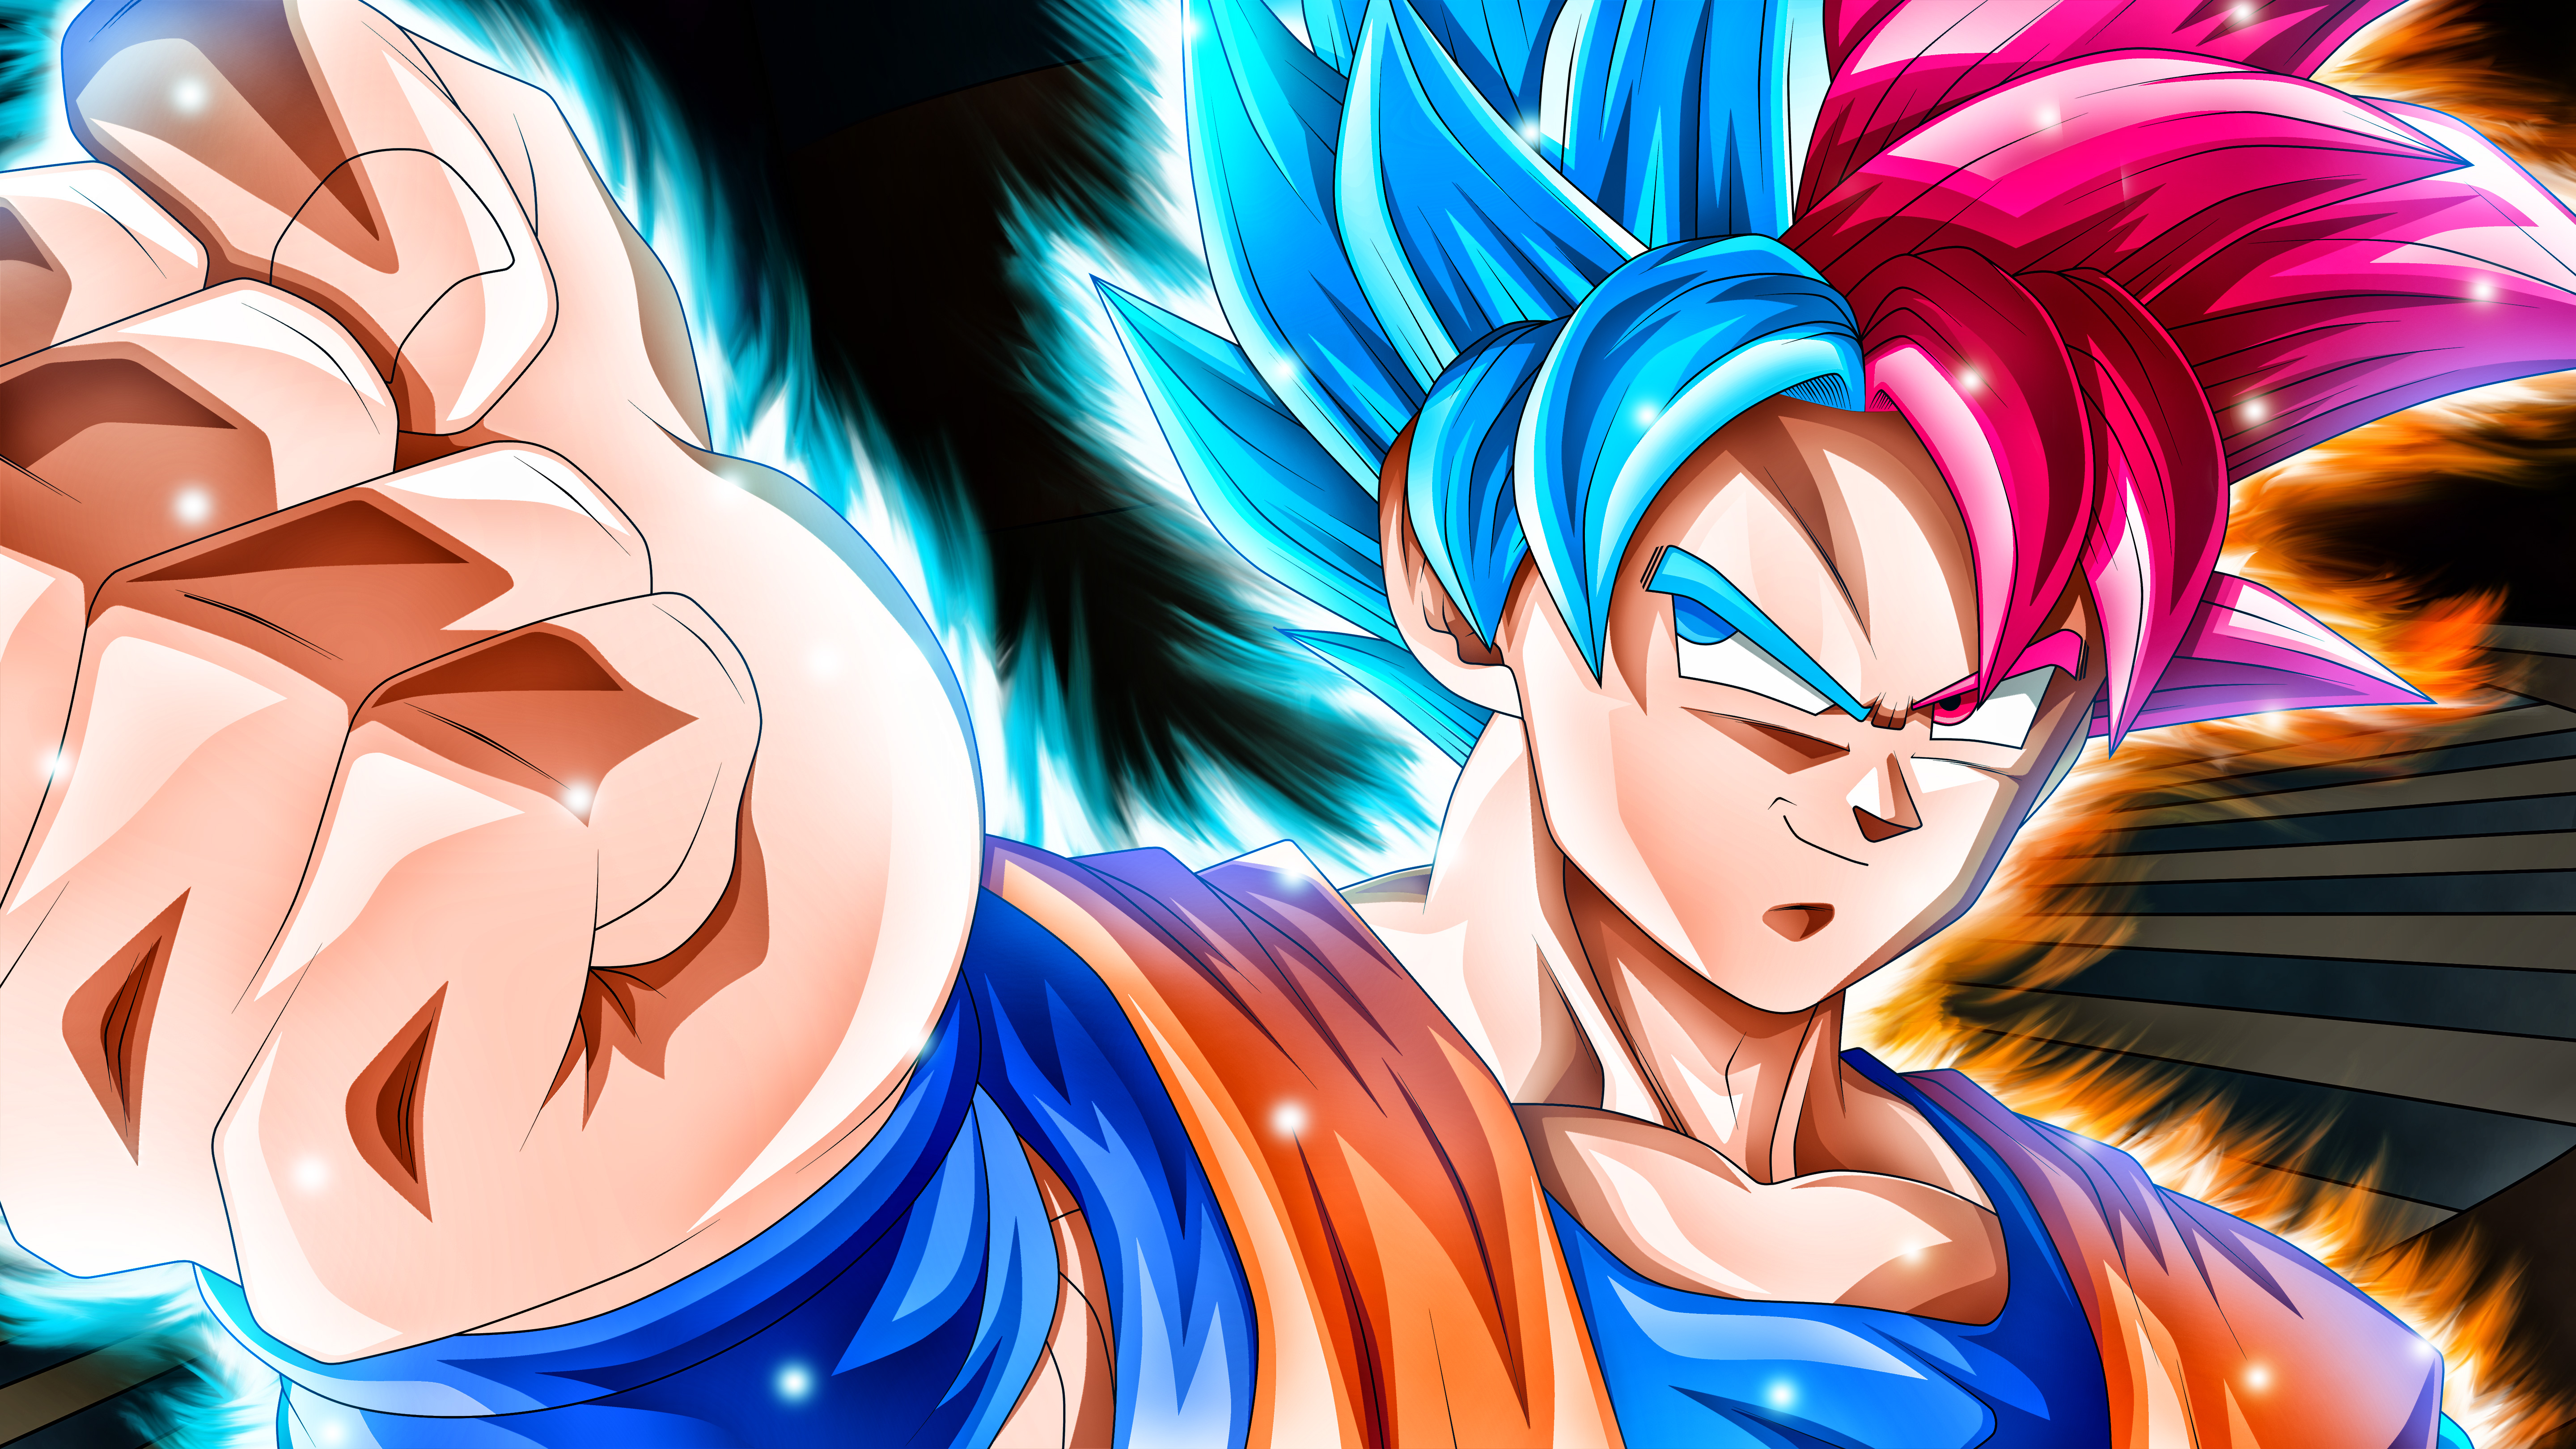 Goku 5k Dragon Ball Super, HD Anime, 4k Wallpapers, Images